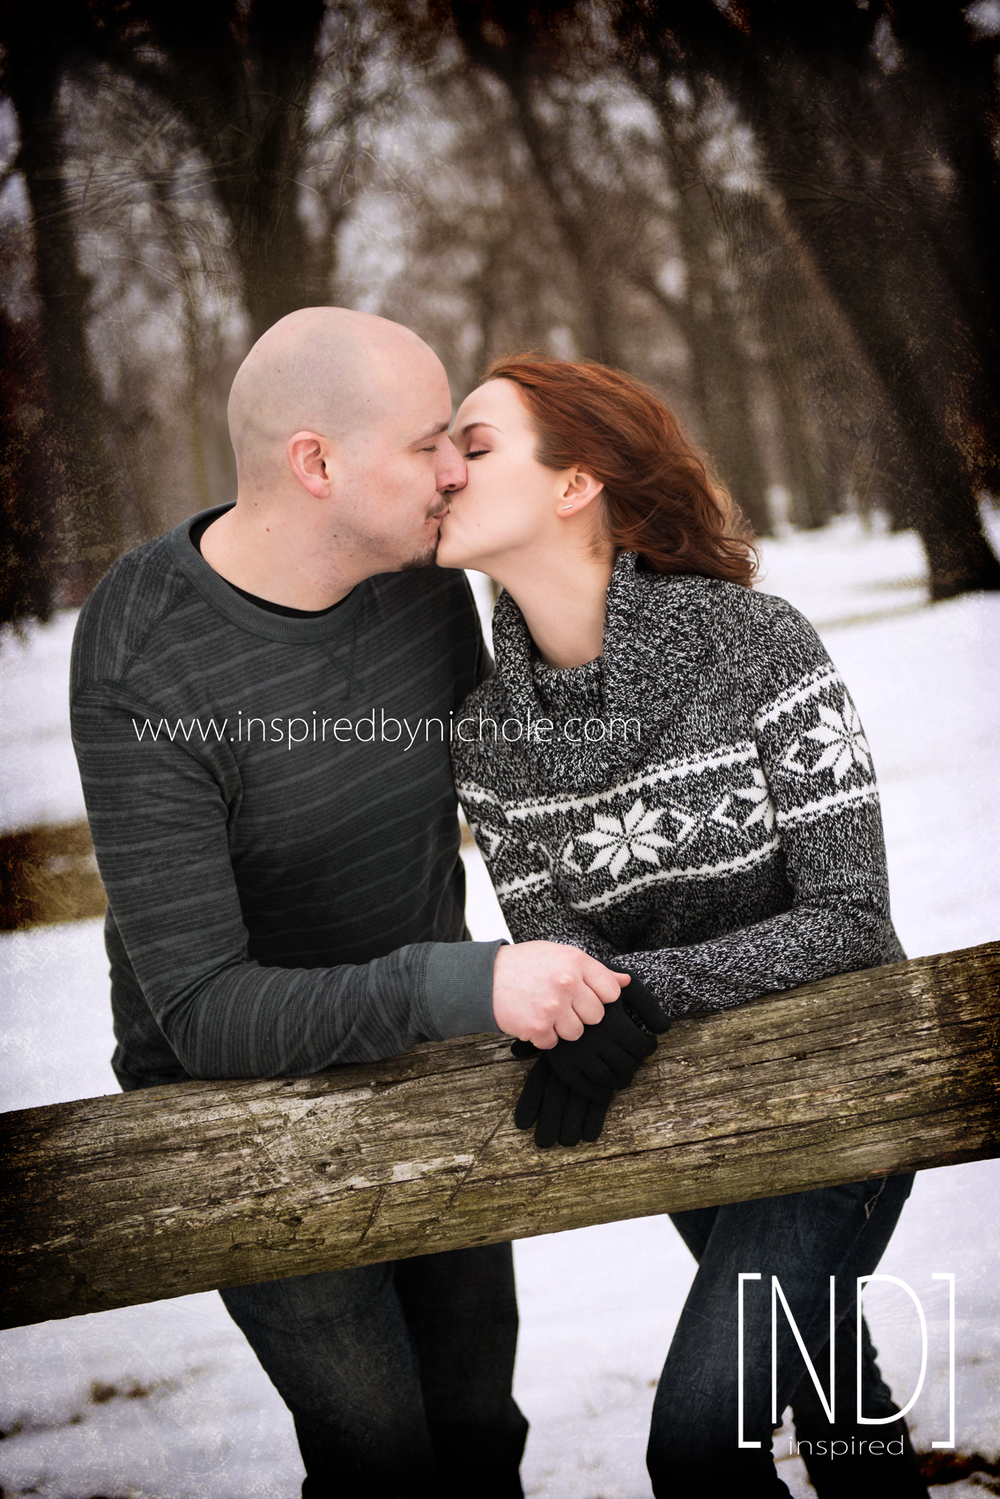 Engagement-Snow-Photography-Winter-02.png